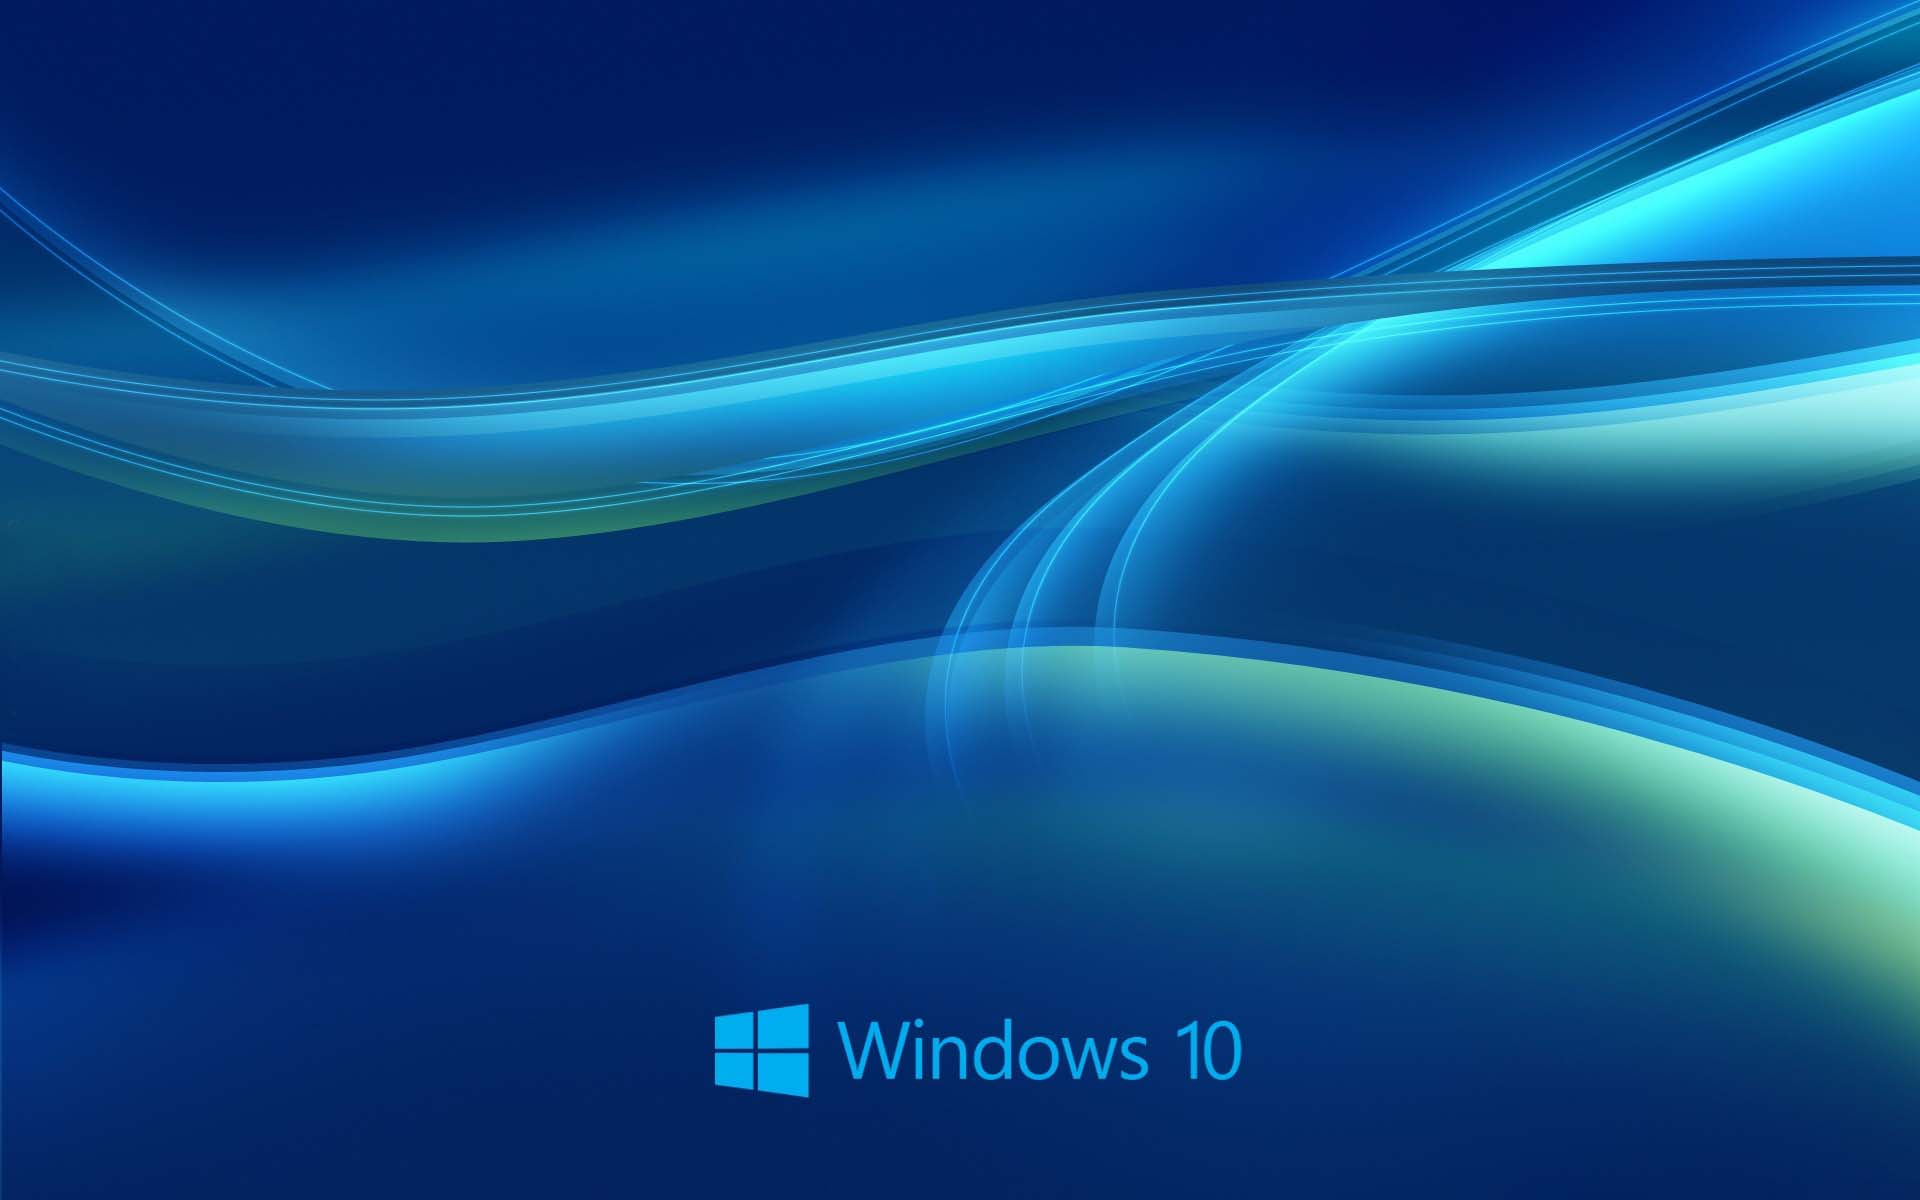 Win 10 wallpaper hd 1080